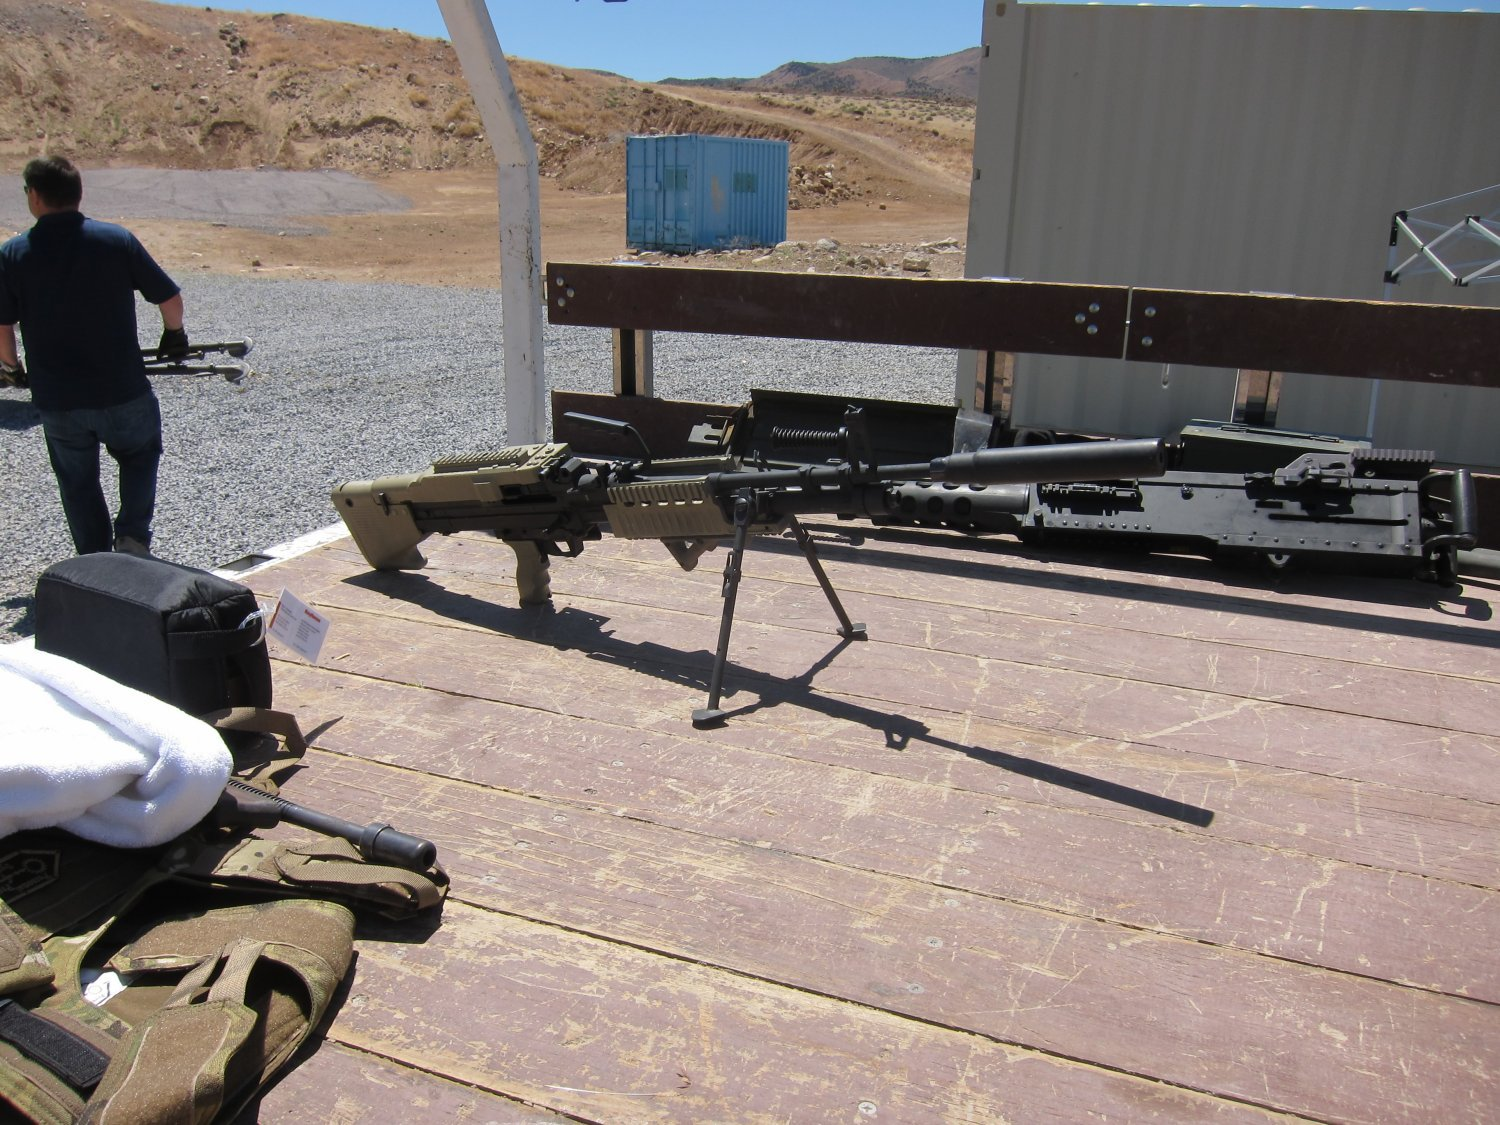 U.S. Ordnance Mk43 Mod 1 M60E4 Medium Machine Gun 7.62mm MMG Future Version 4 <!  :en  >U.S. Ordnance Mk43 Mod 1/M60E4 Commando 7.62mm NATO Medium Machine Gun (MMG) for Special Operations Forces (U.S. Navy SEALs): Latest Version Weapon Gets Test Fired at the Range (Video!) <!  :  >